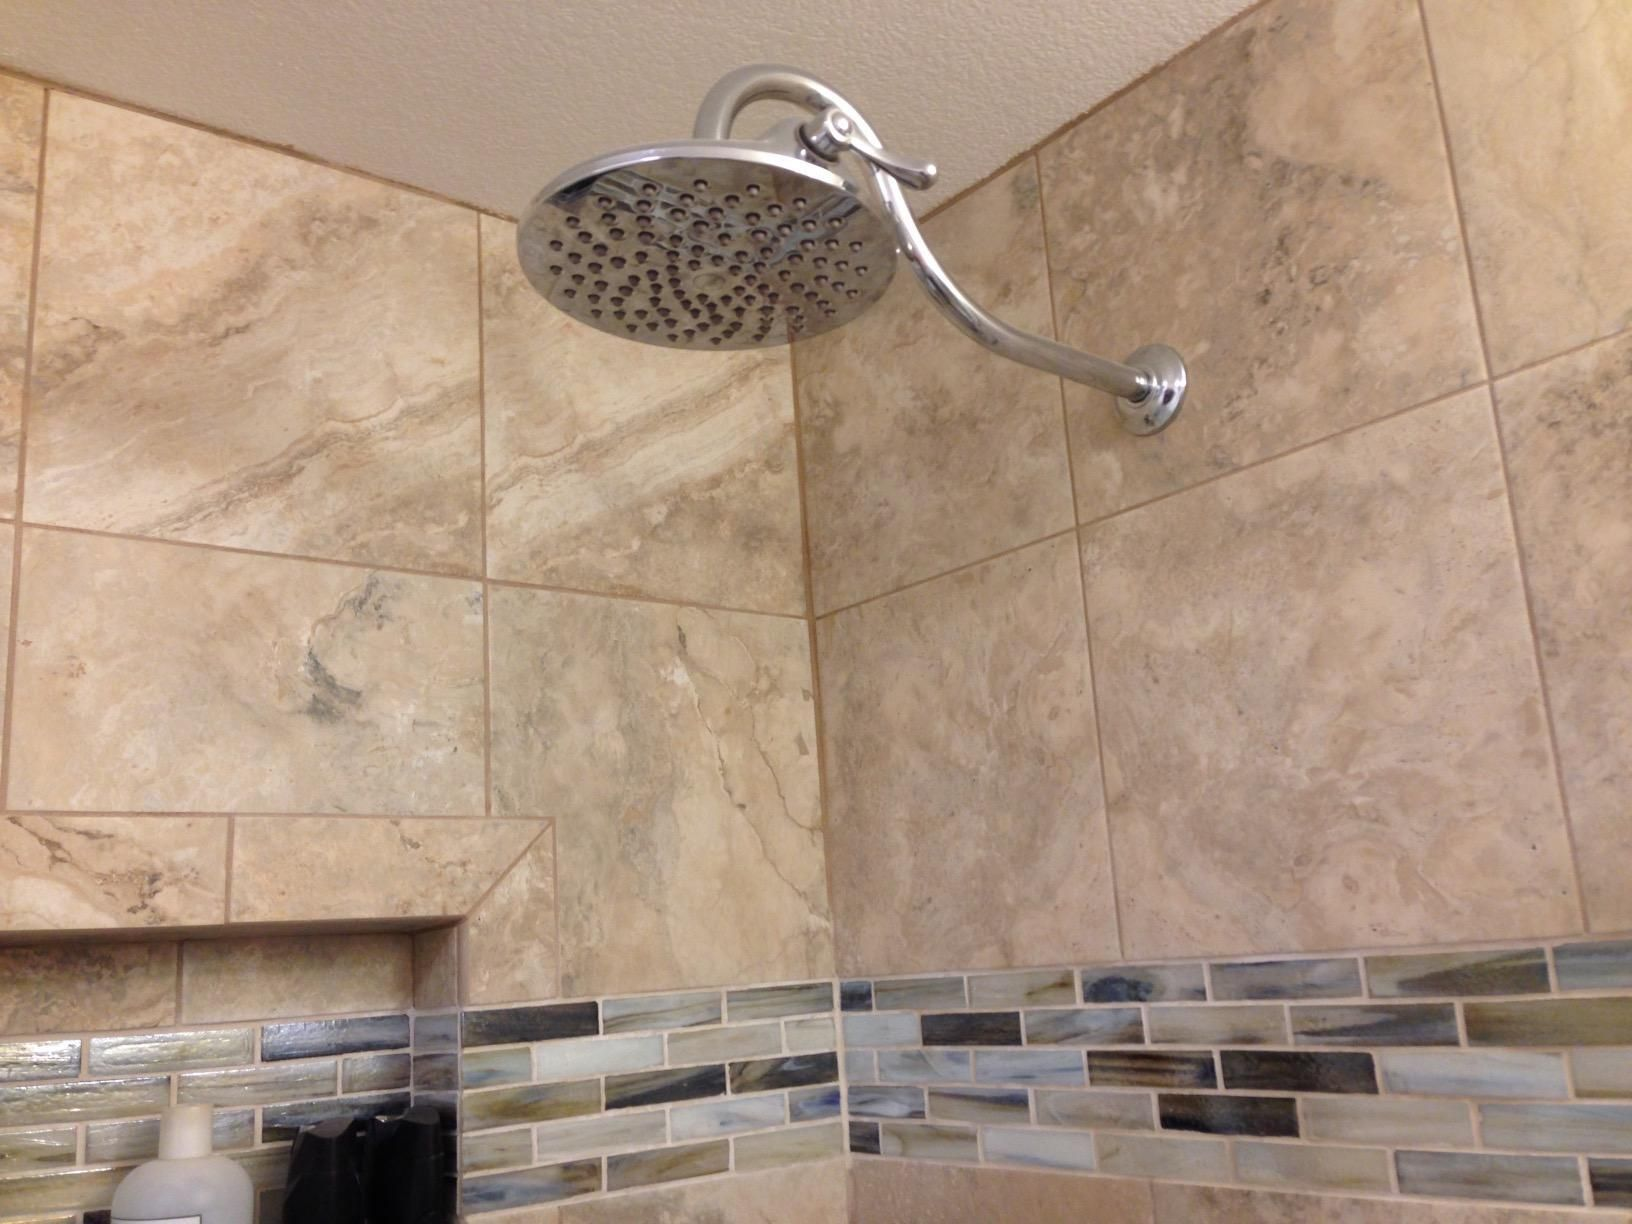 Best Rain Showerhead Reviews In 2020 With Images Shower Heads